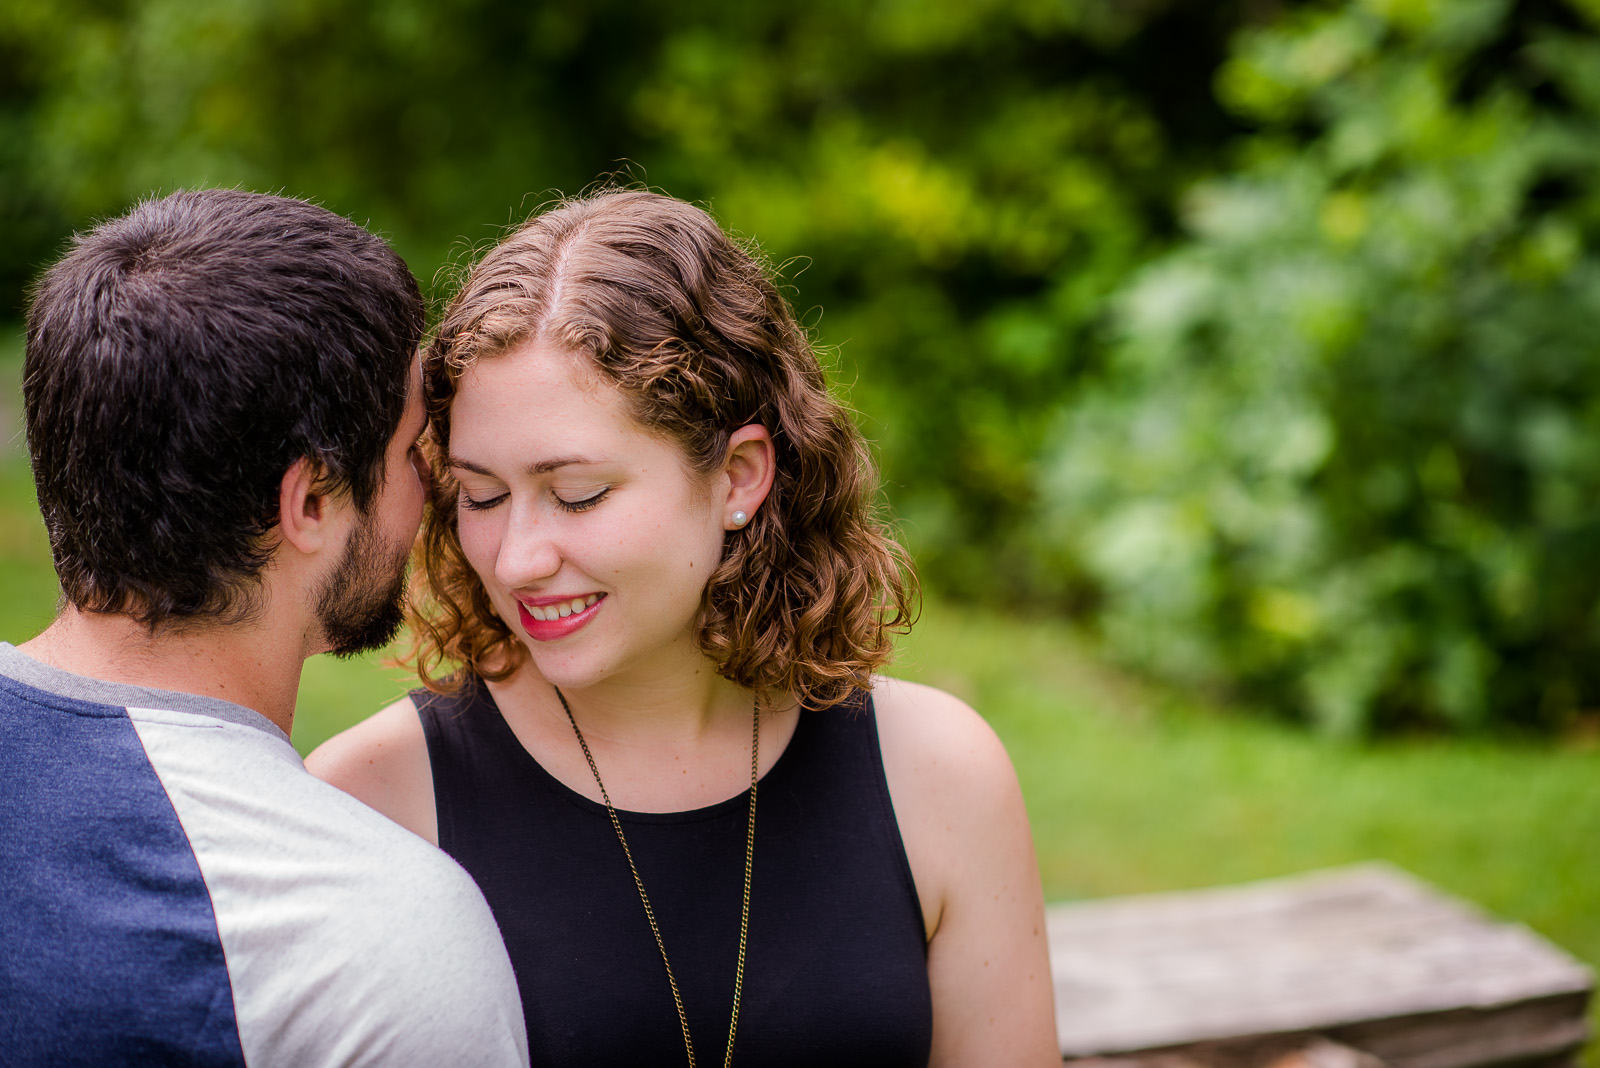 Eric_and_Christy_Photography_Blog_Engagement_Andrea_Clint-8